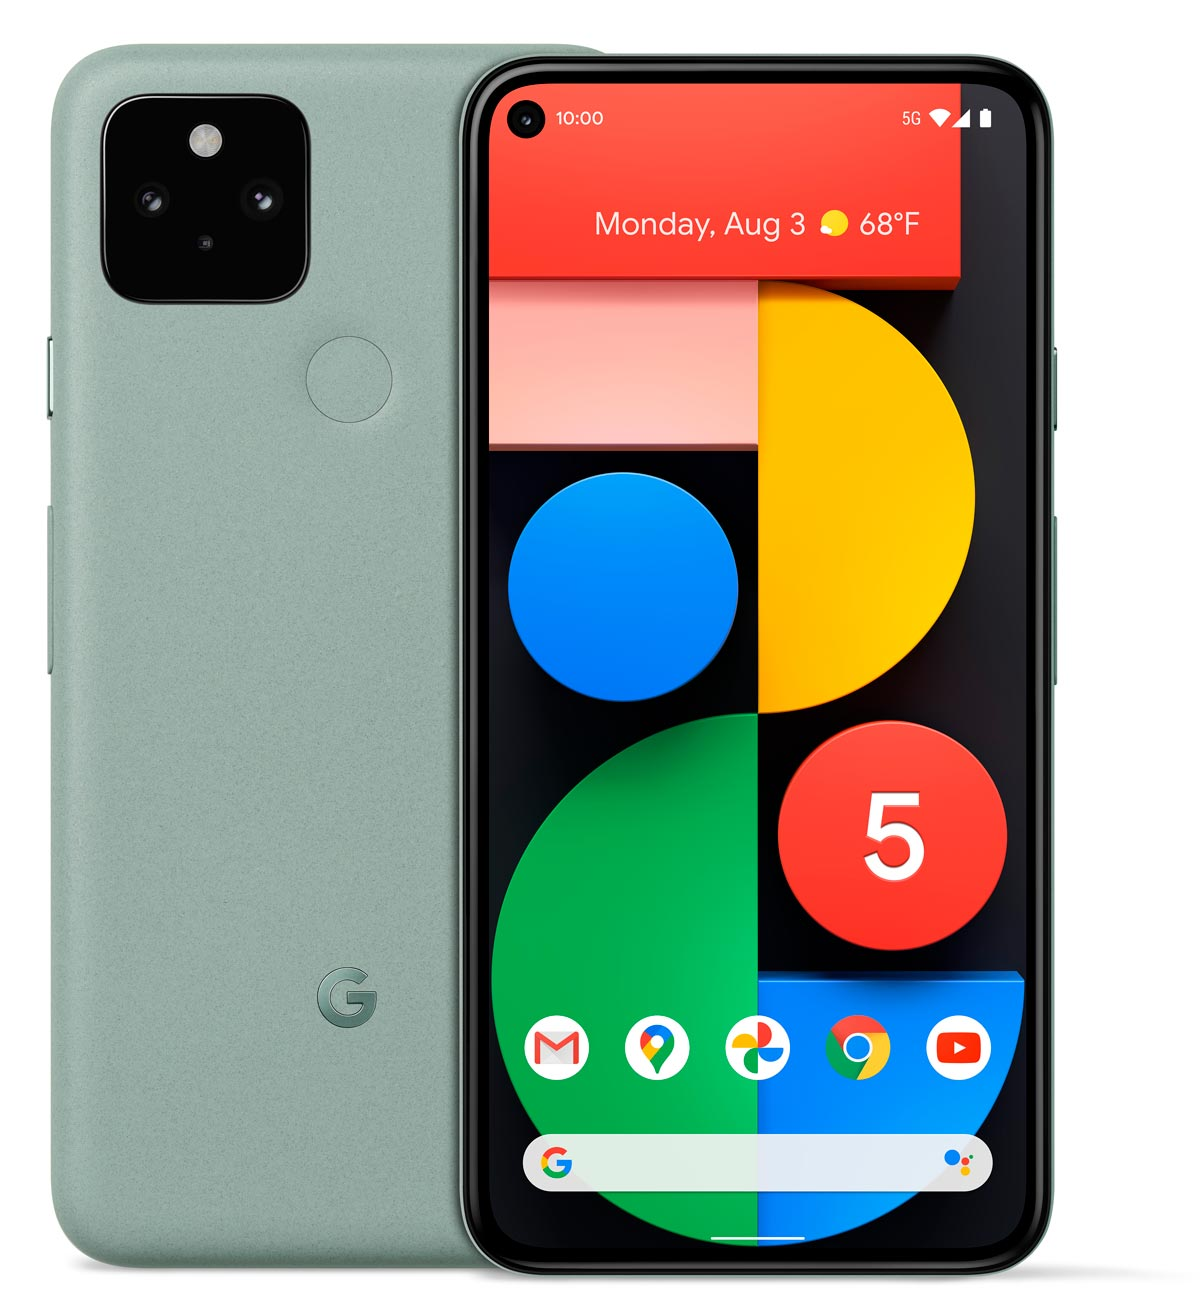 The Google Pixel 5 Android smartphone in Sorta Sage